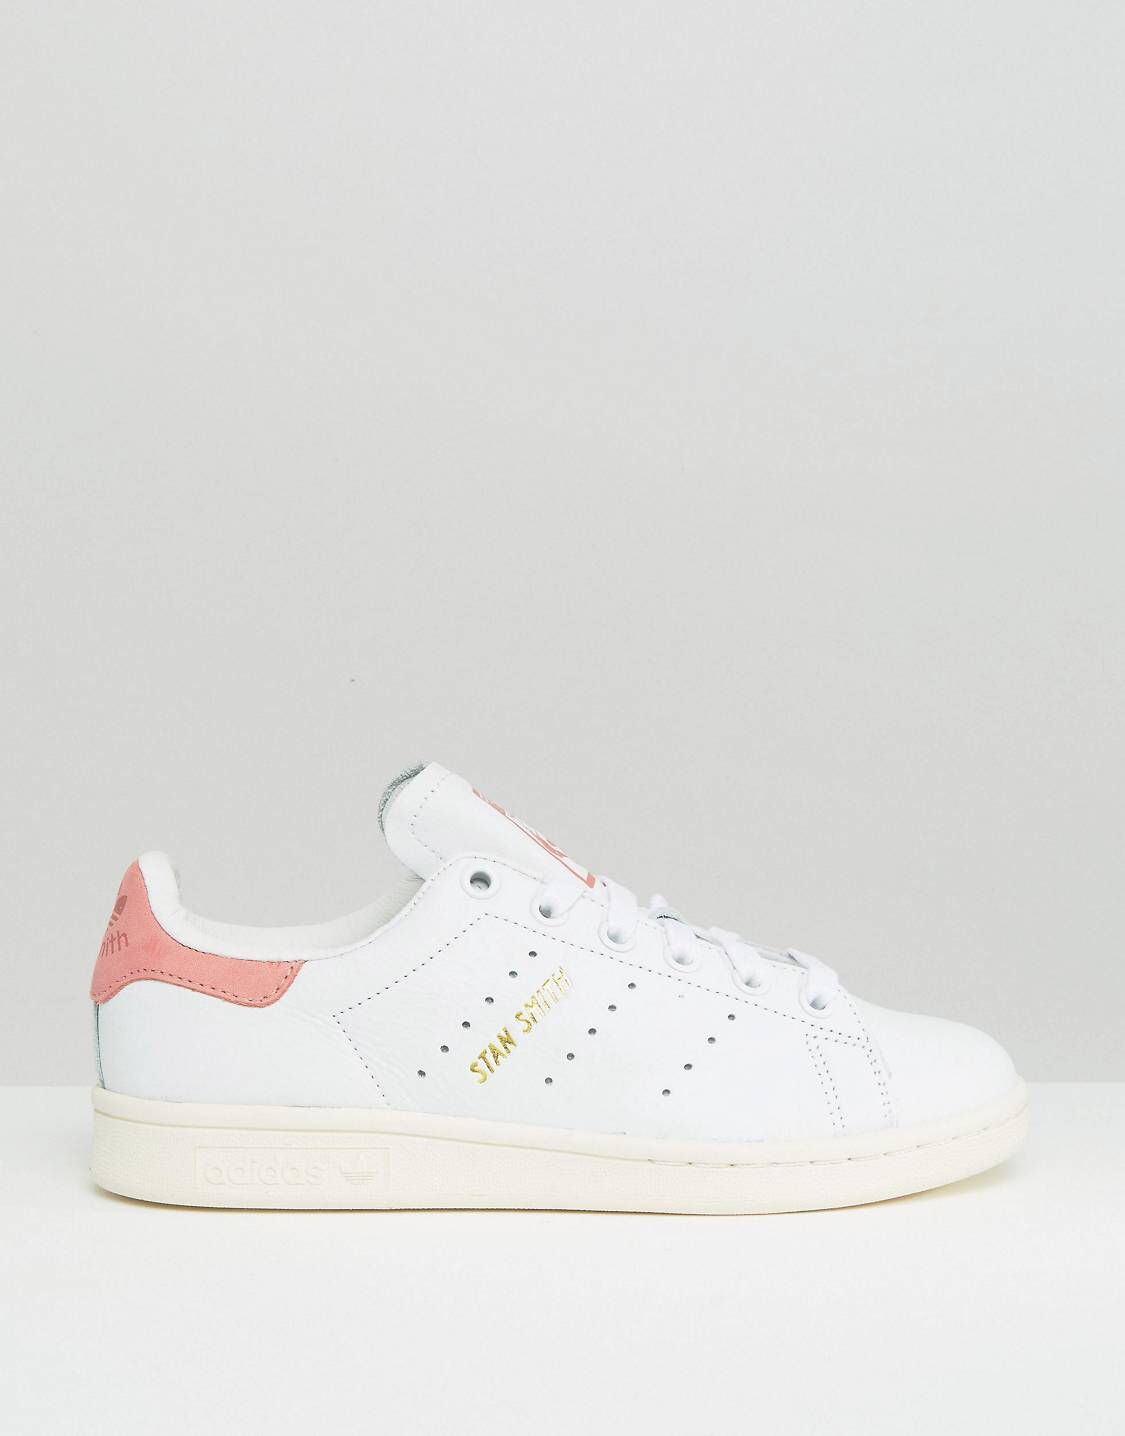 Adidas Originals White And Pink Stan Smith Sneakers Shoes Schuhe